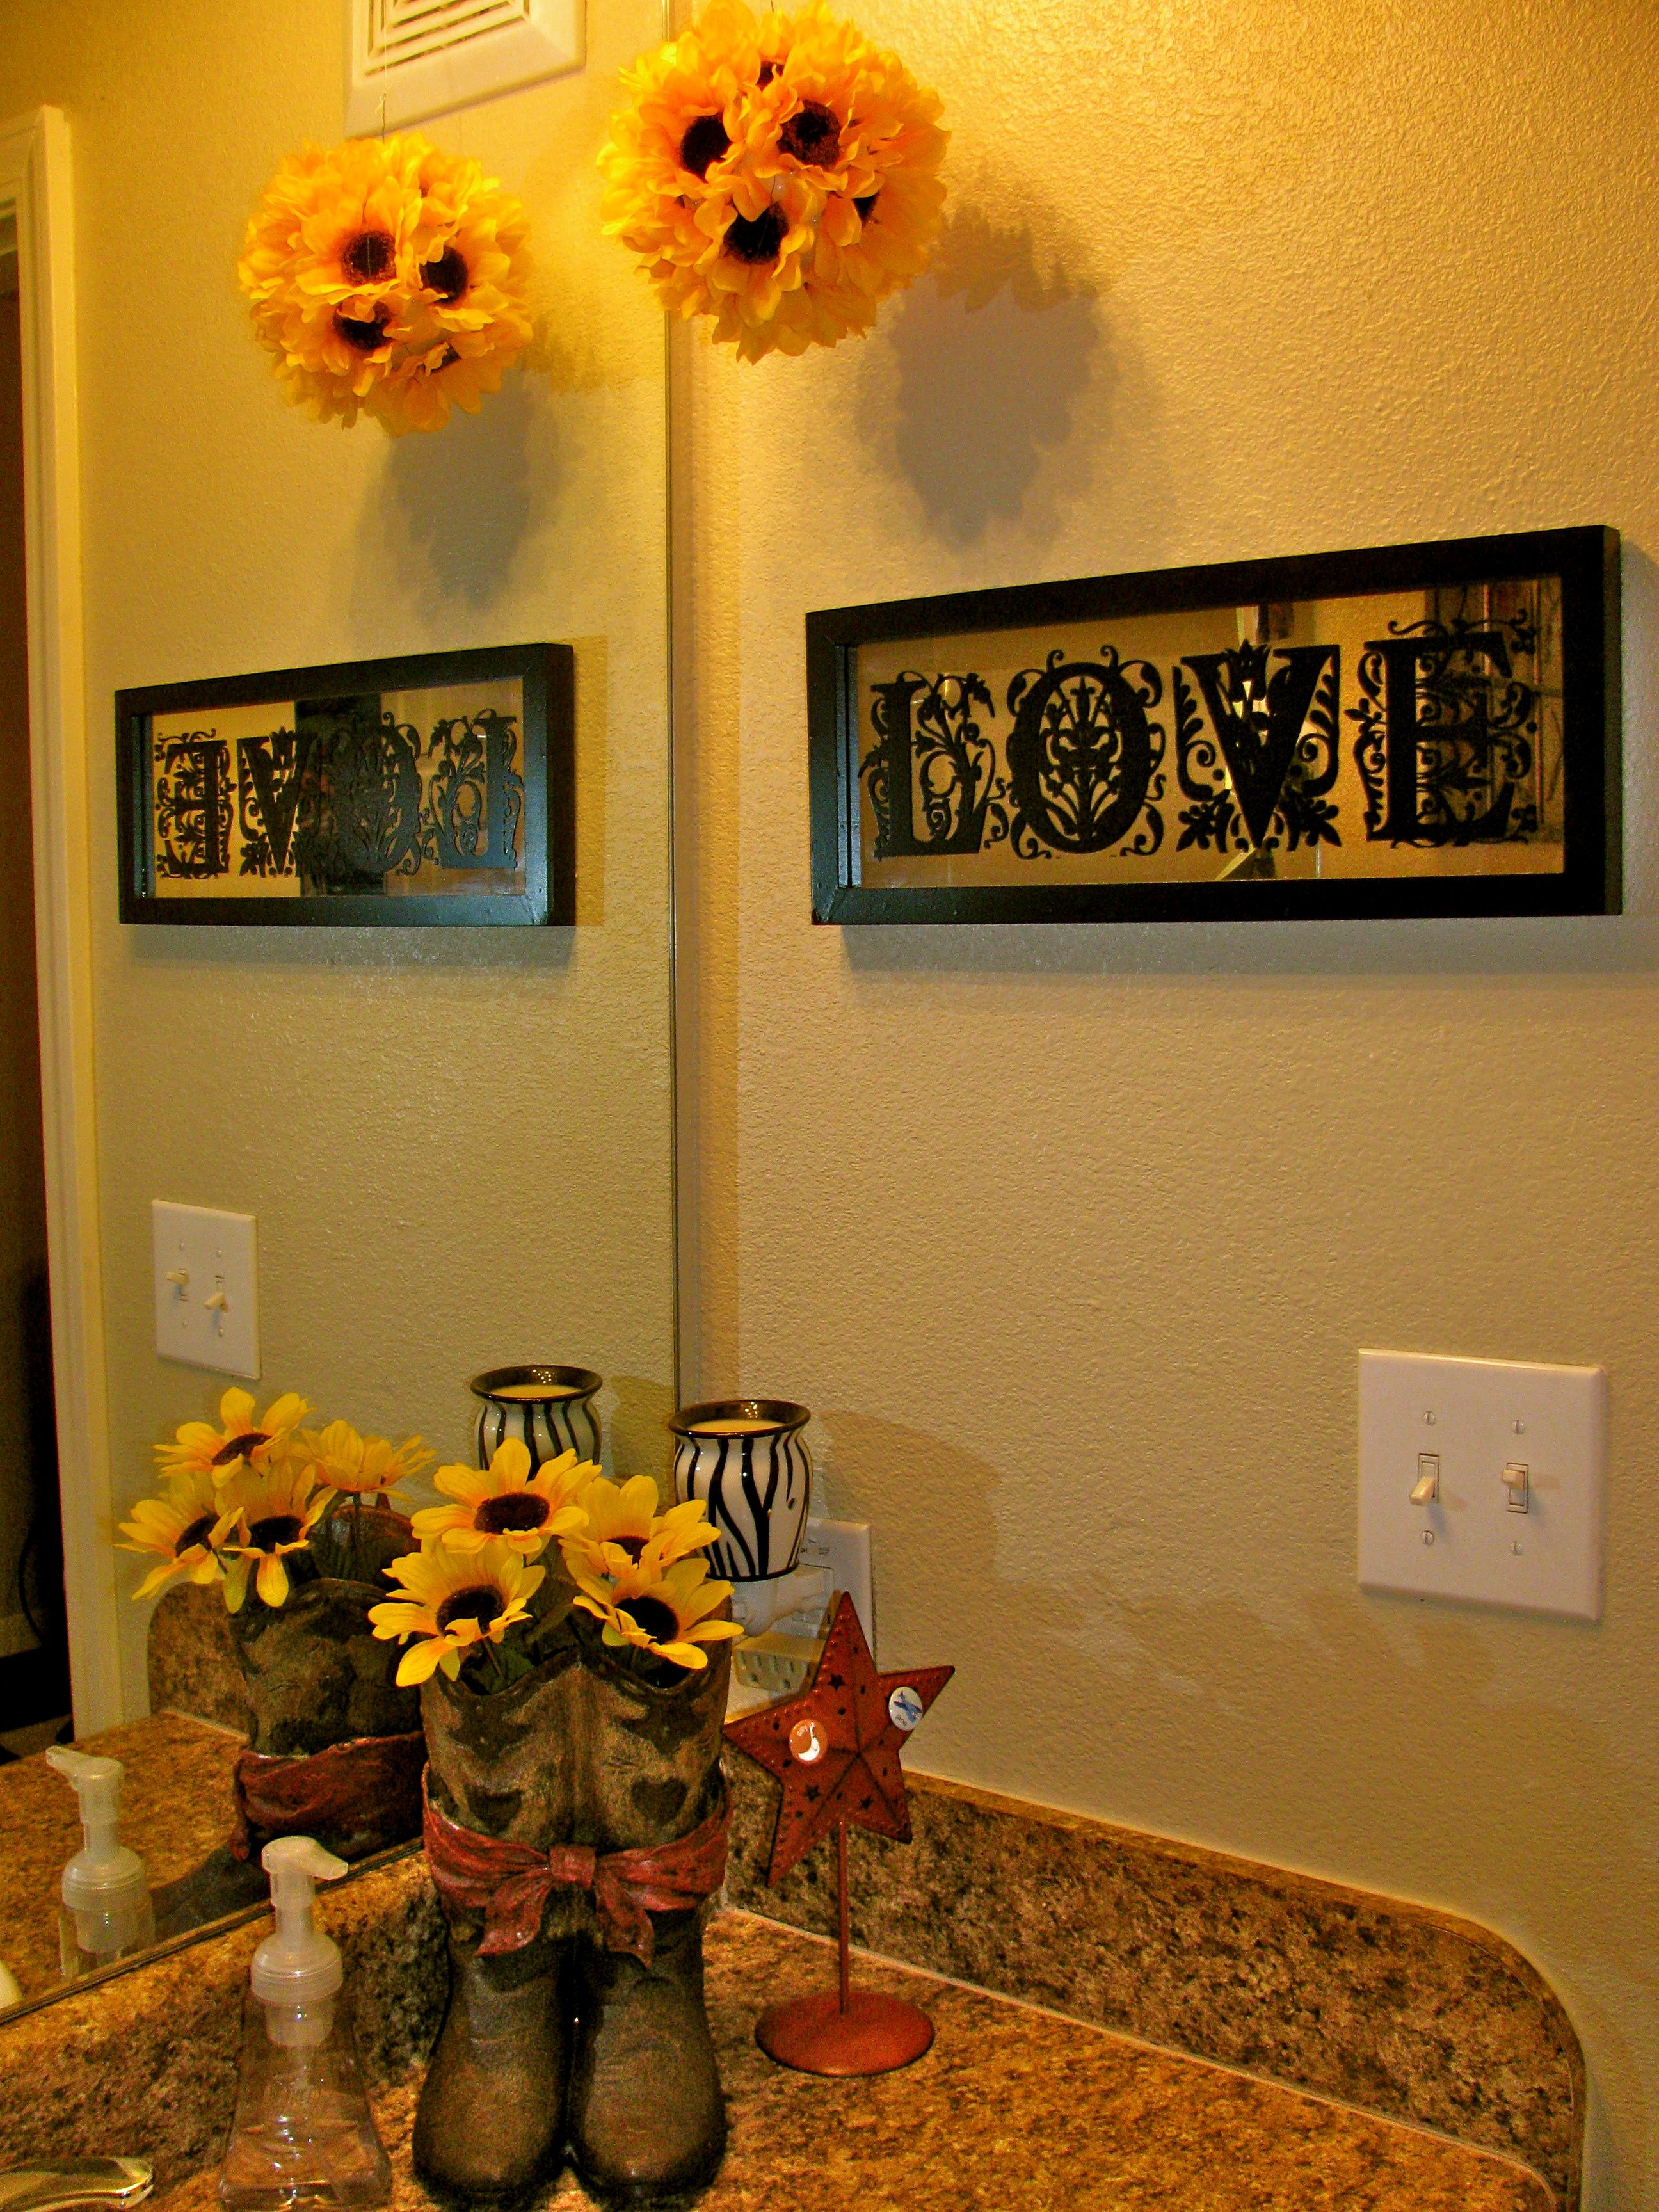 Sunflower Ball Easy And Cheap Craft I Want The Love Sign Love Sunflowers Would Change The Boots To Sunflower Bathroom Sunflower Home Decor Bathroom Themes